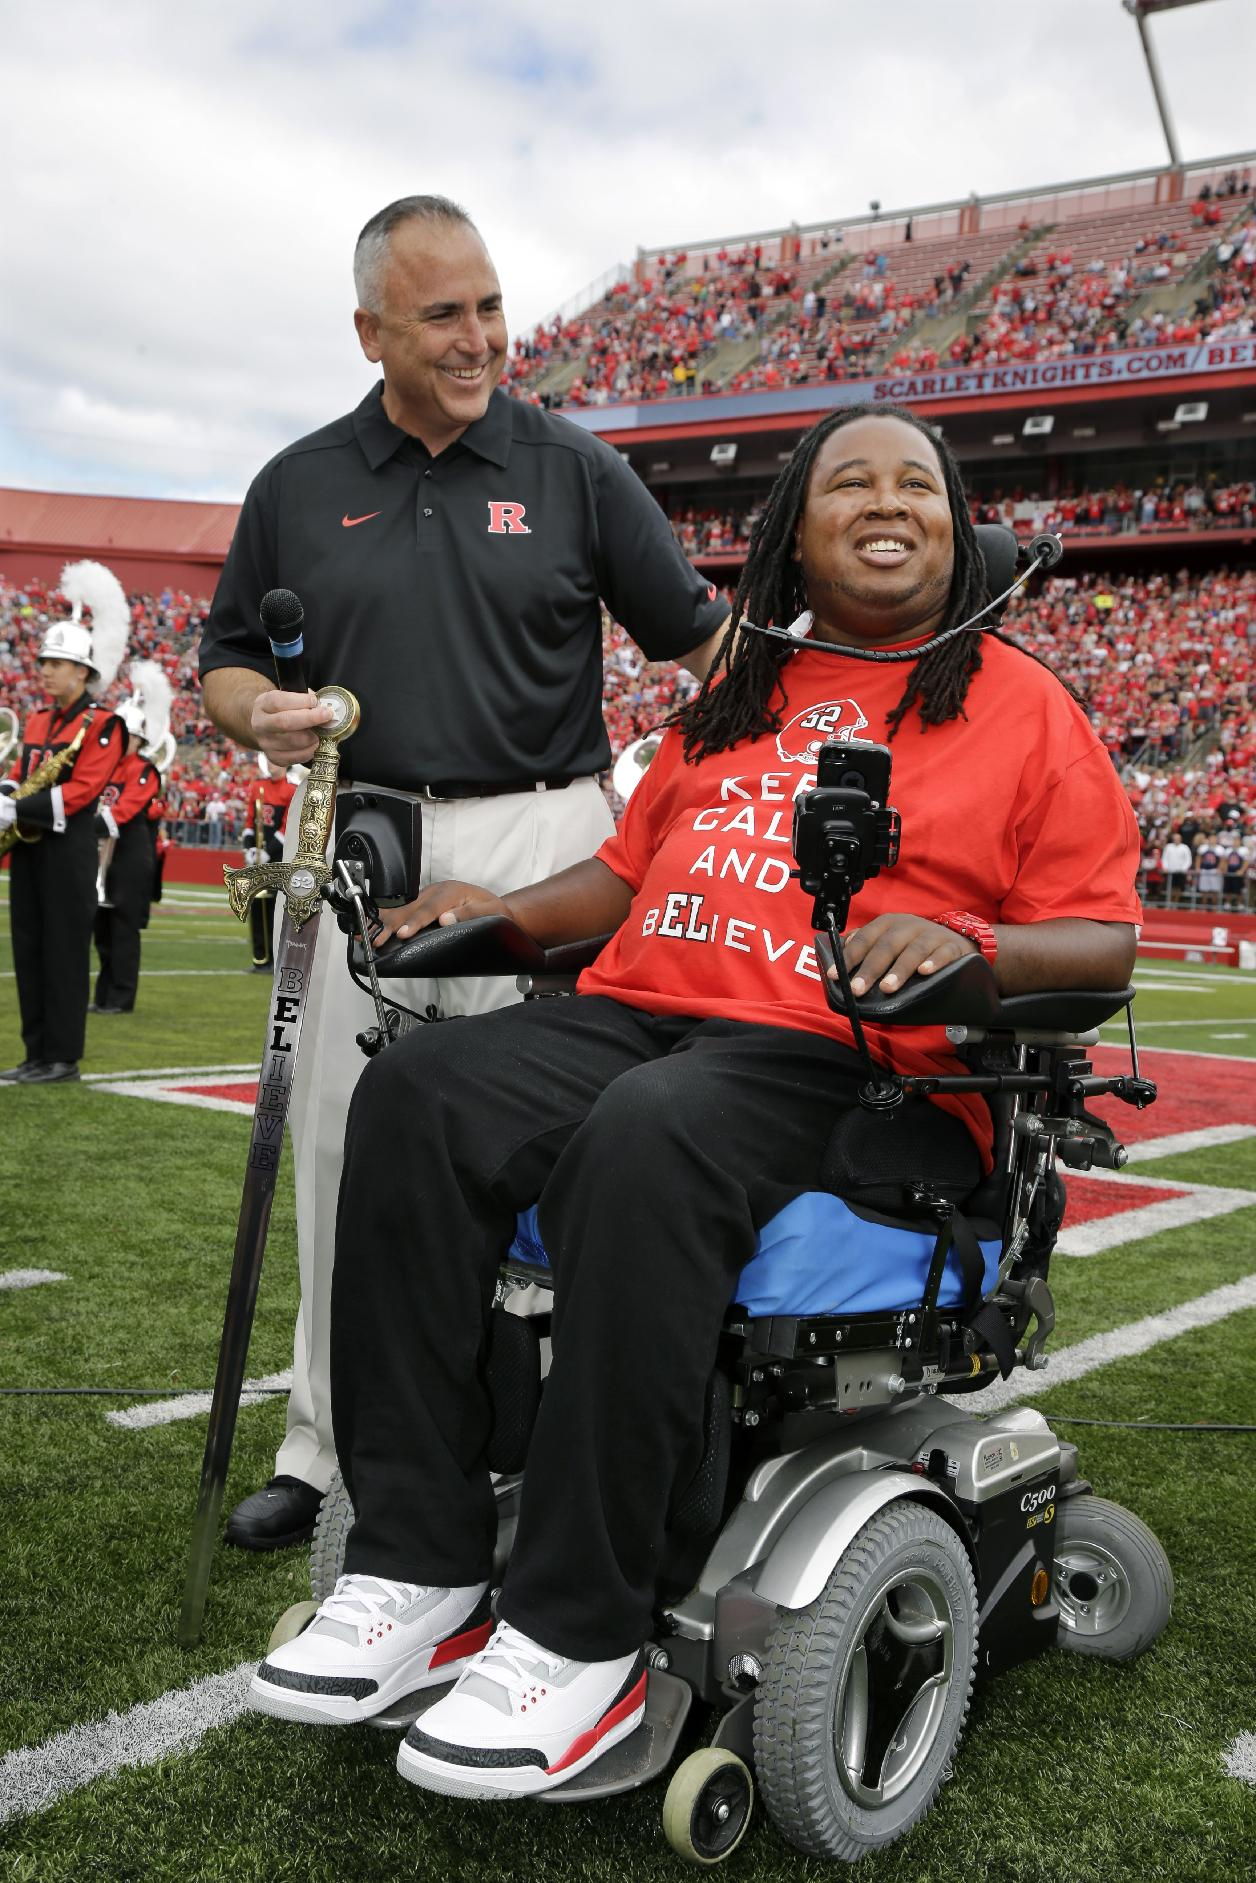 Rutgers football head coach Kyle Flood holds a Rutgers sword presented to former football player Eric LeGrand during ceremony where his jersey number 52 was retired at halftime of an NCAA college football game against Eastern Michigan in Piscataway, N.J., Saturday, Sept. 14, 2013